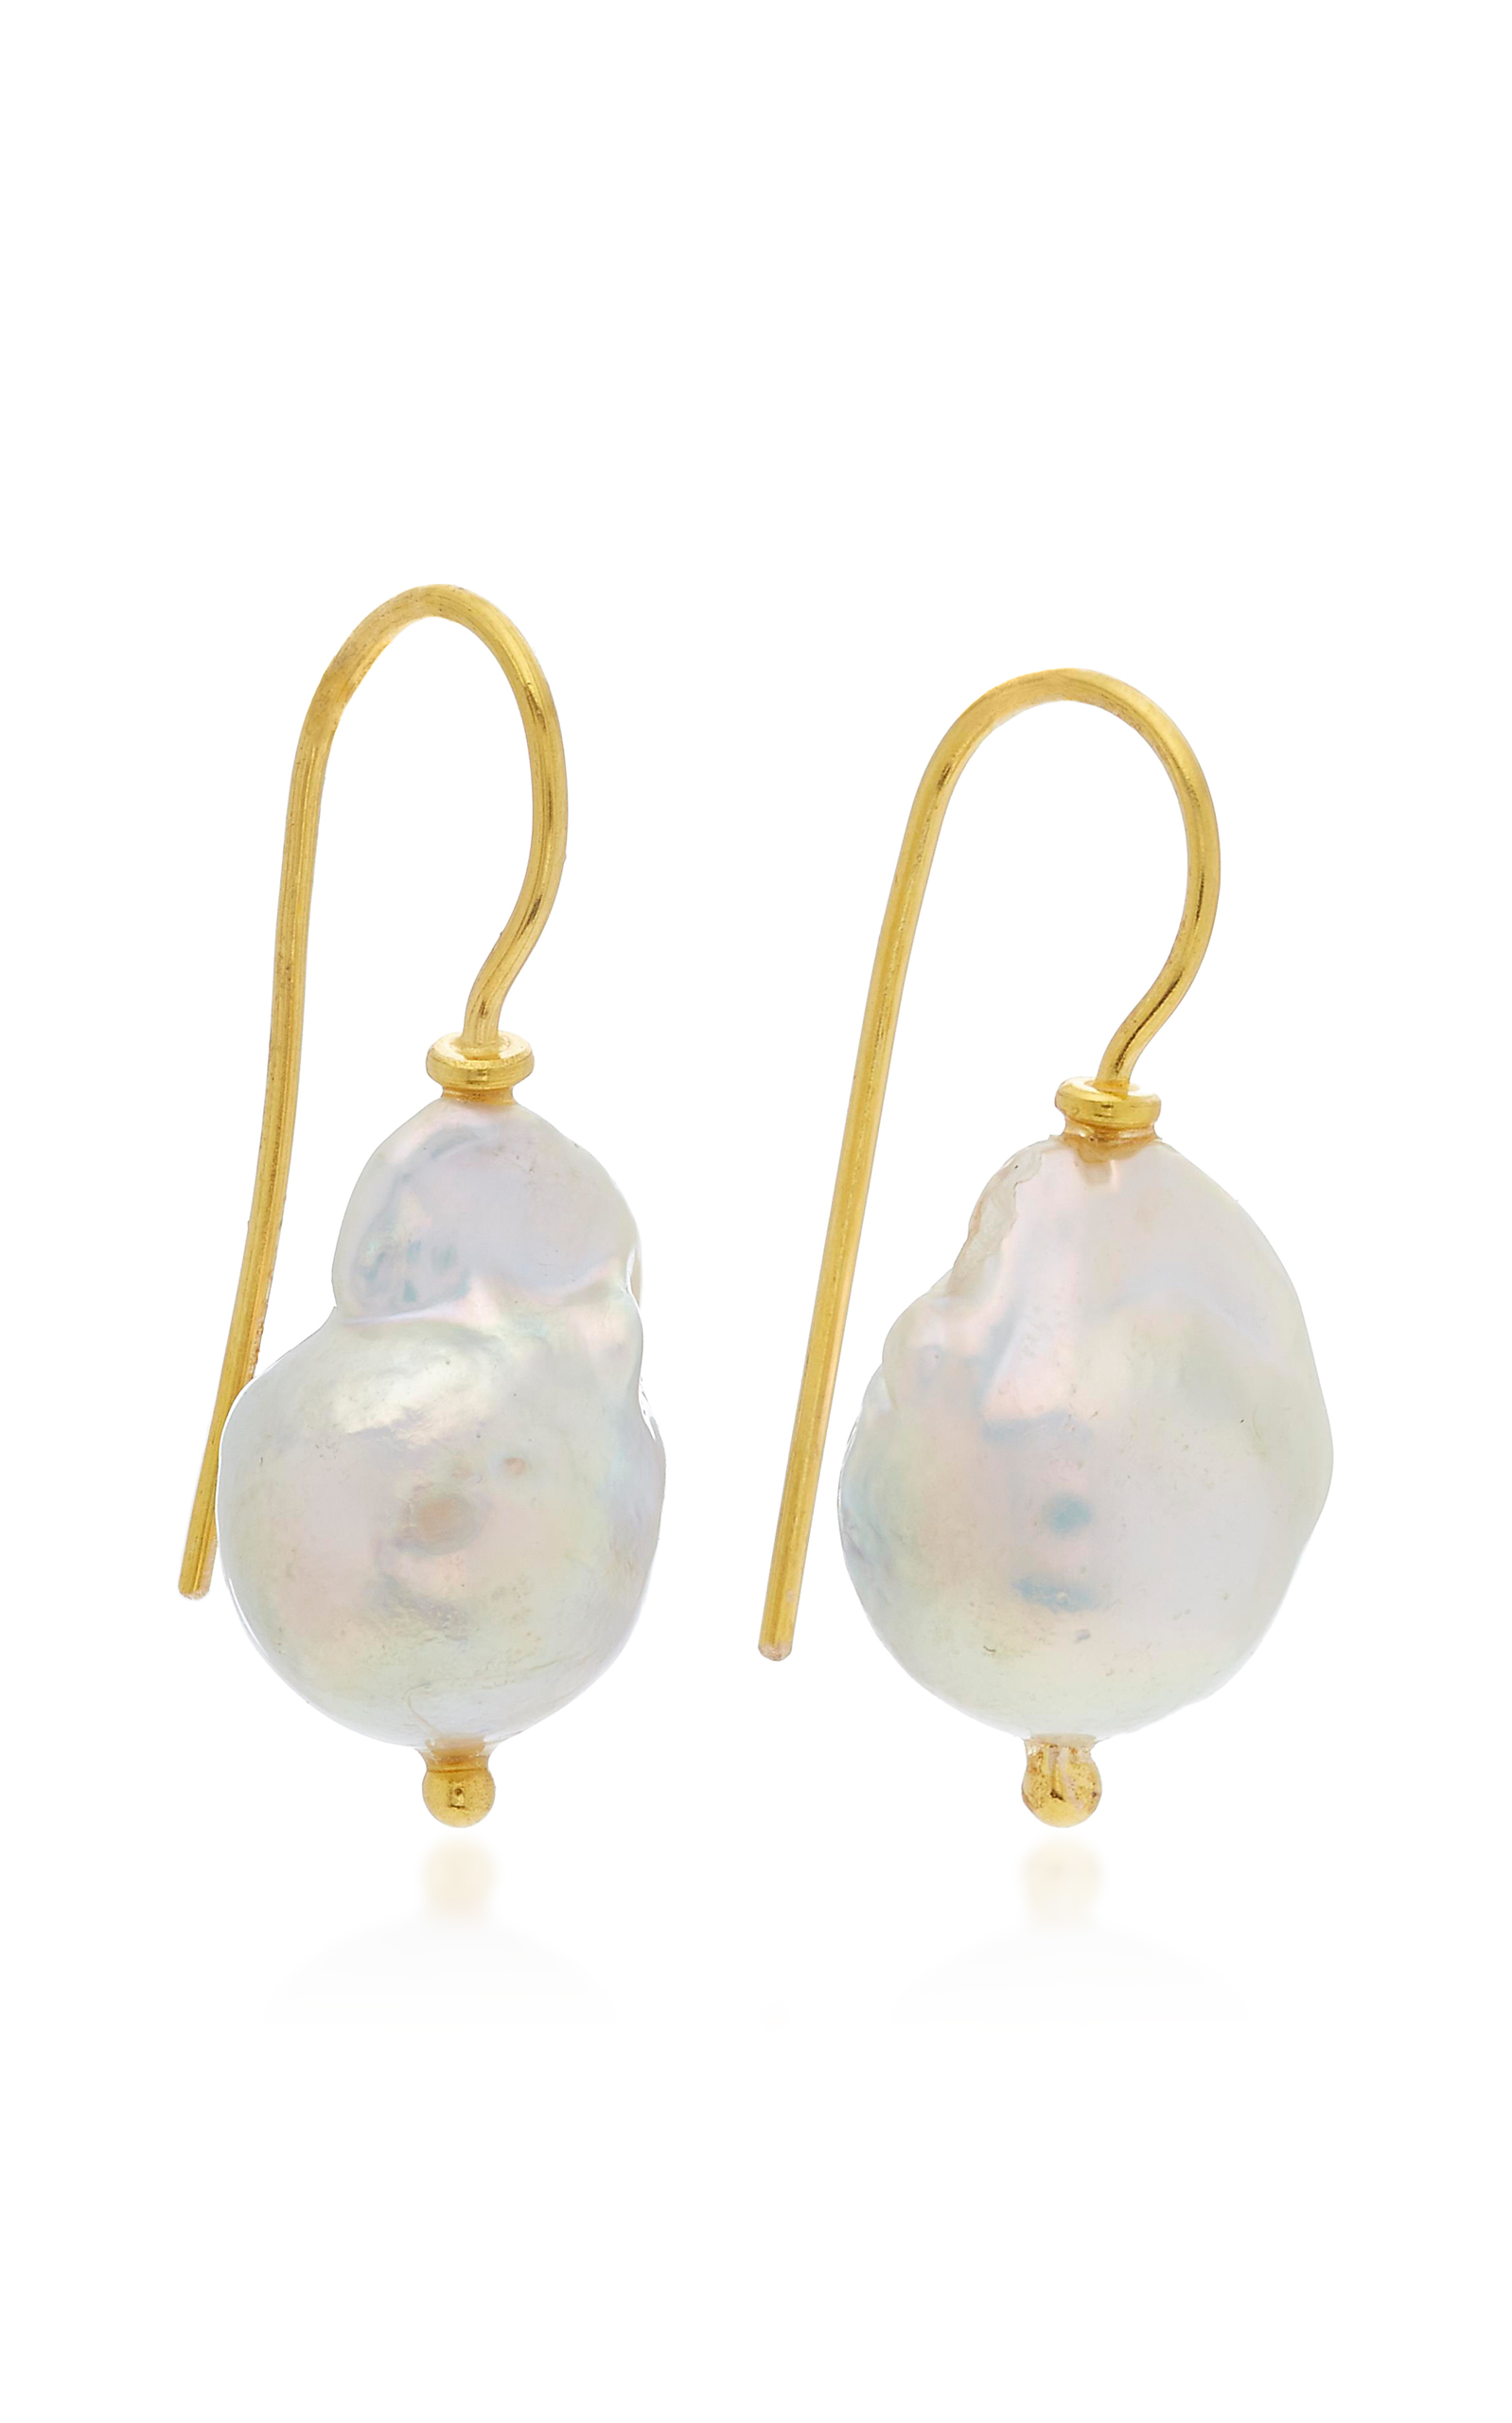 lightbox product and single pearl one erickson beamon earrings my only